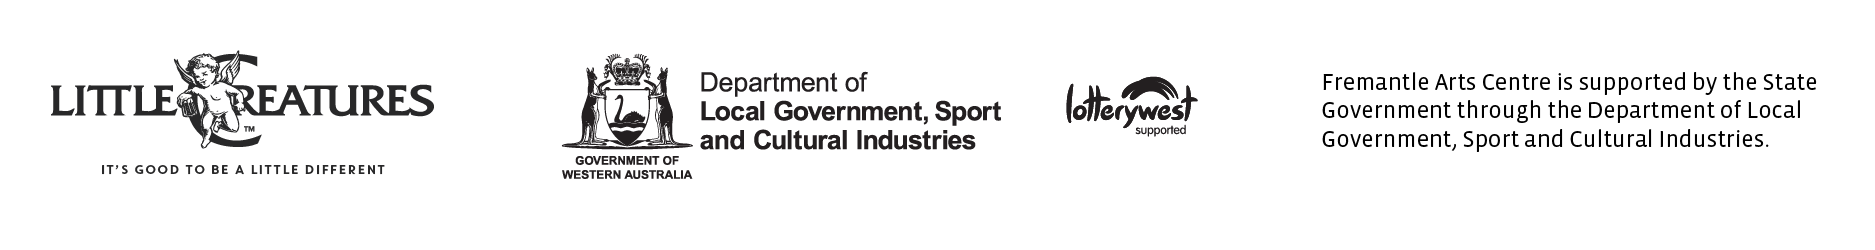 Supported by Little Creatures Brewing, Lotterywest and the State Government through the Department of Local Government, Sport and Creative Industries